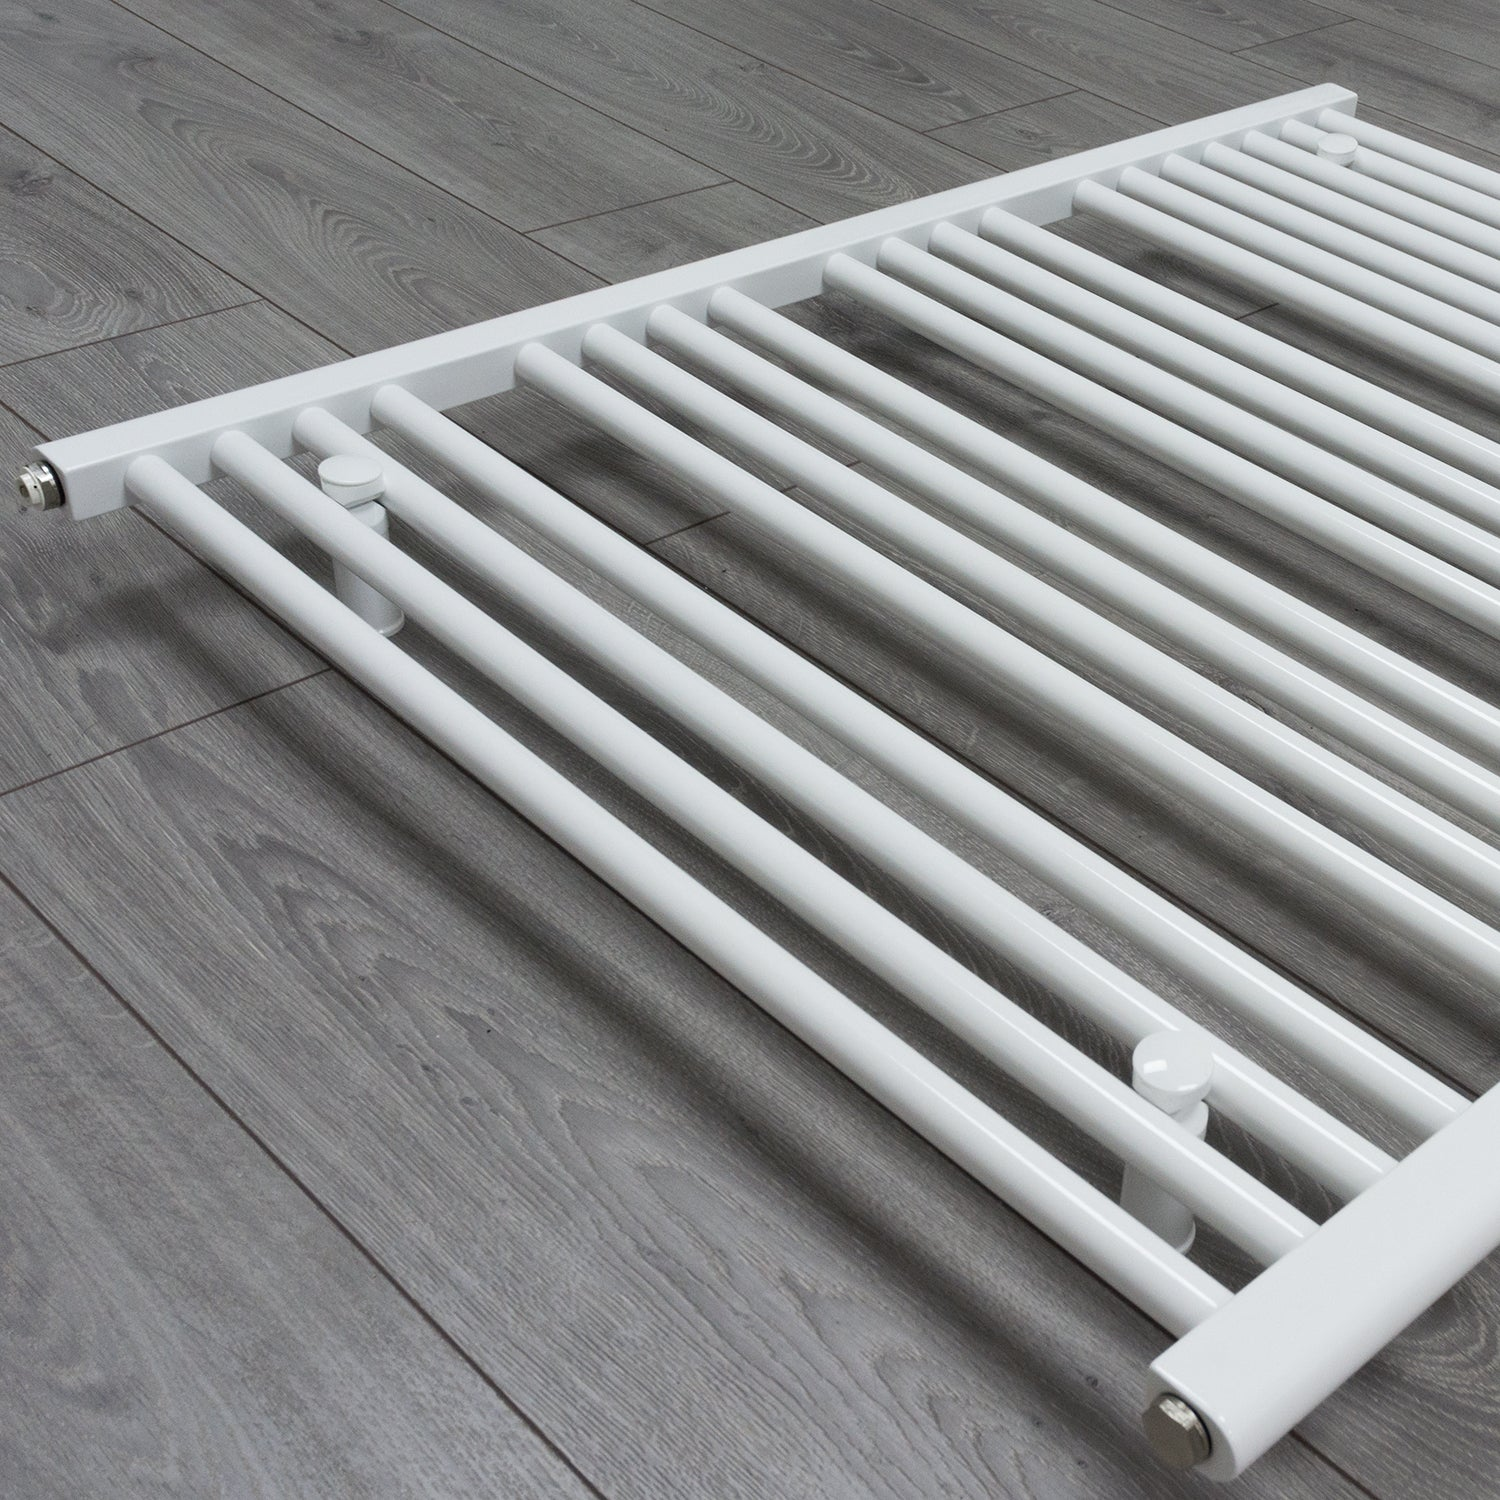 1000mm x 700mm White Heated Towel Rail Radiator Close Up Image